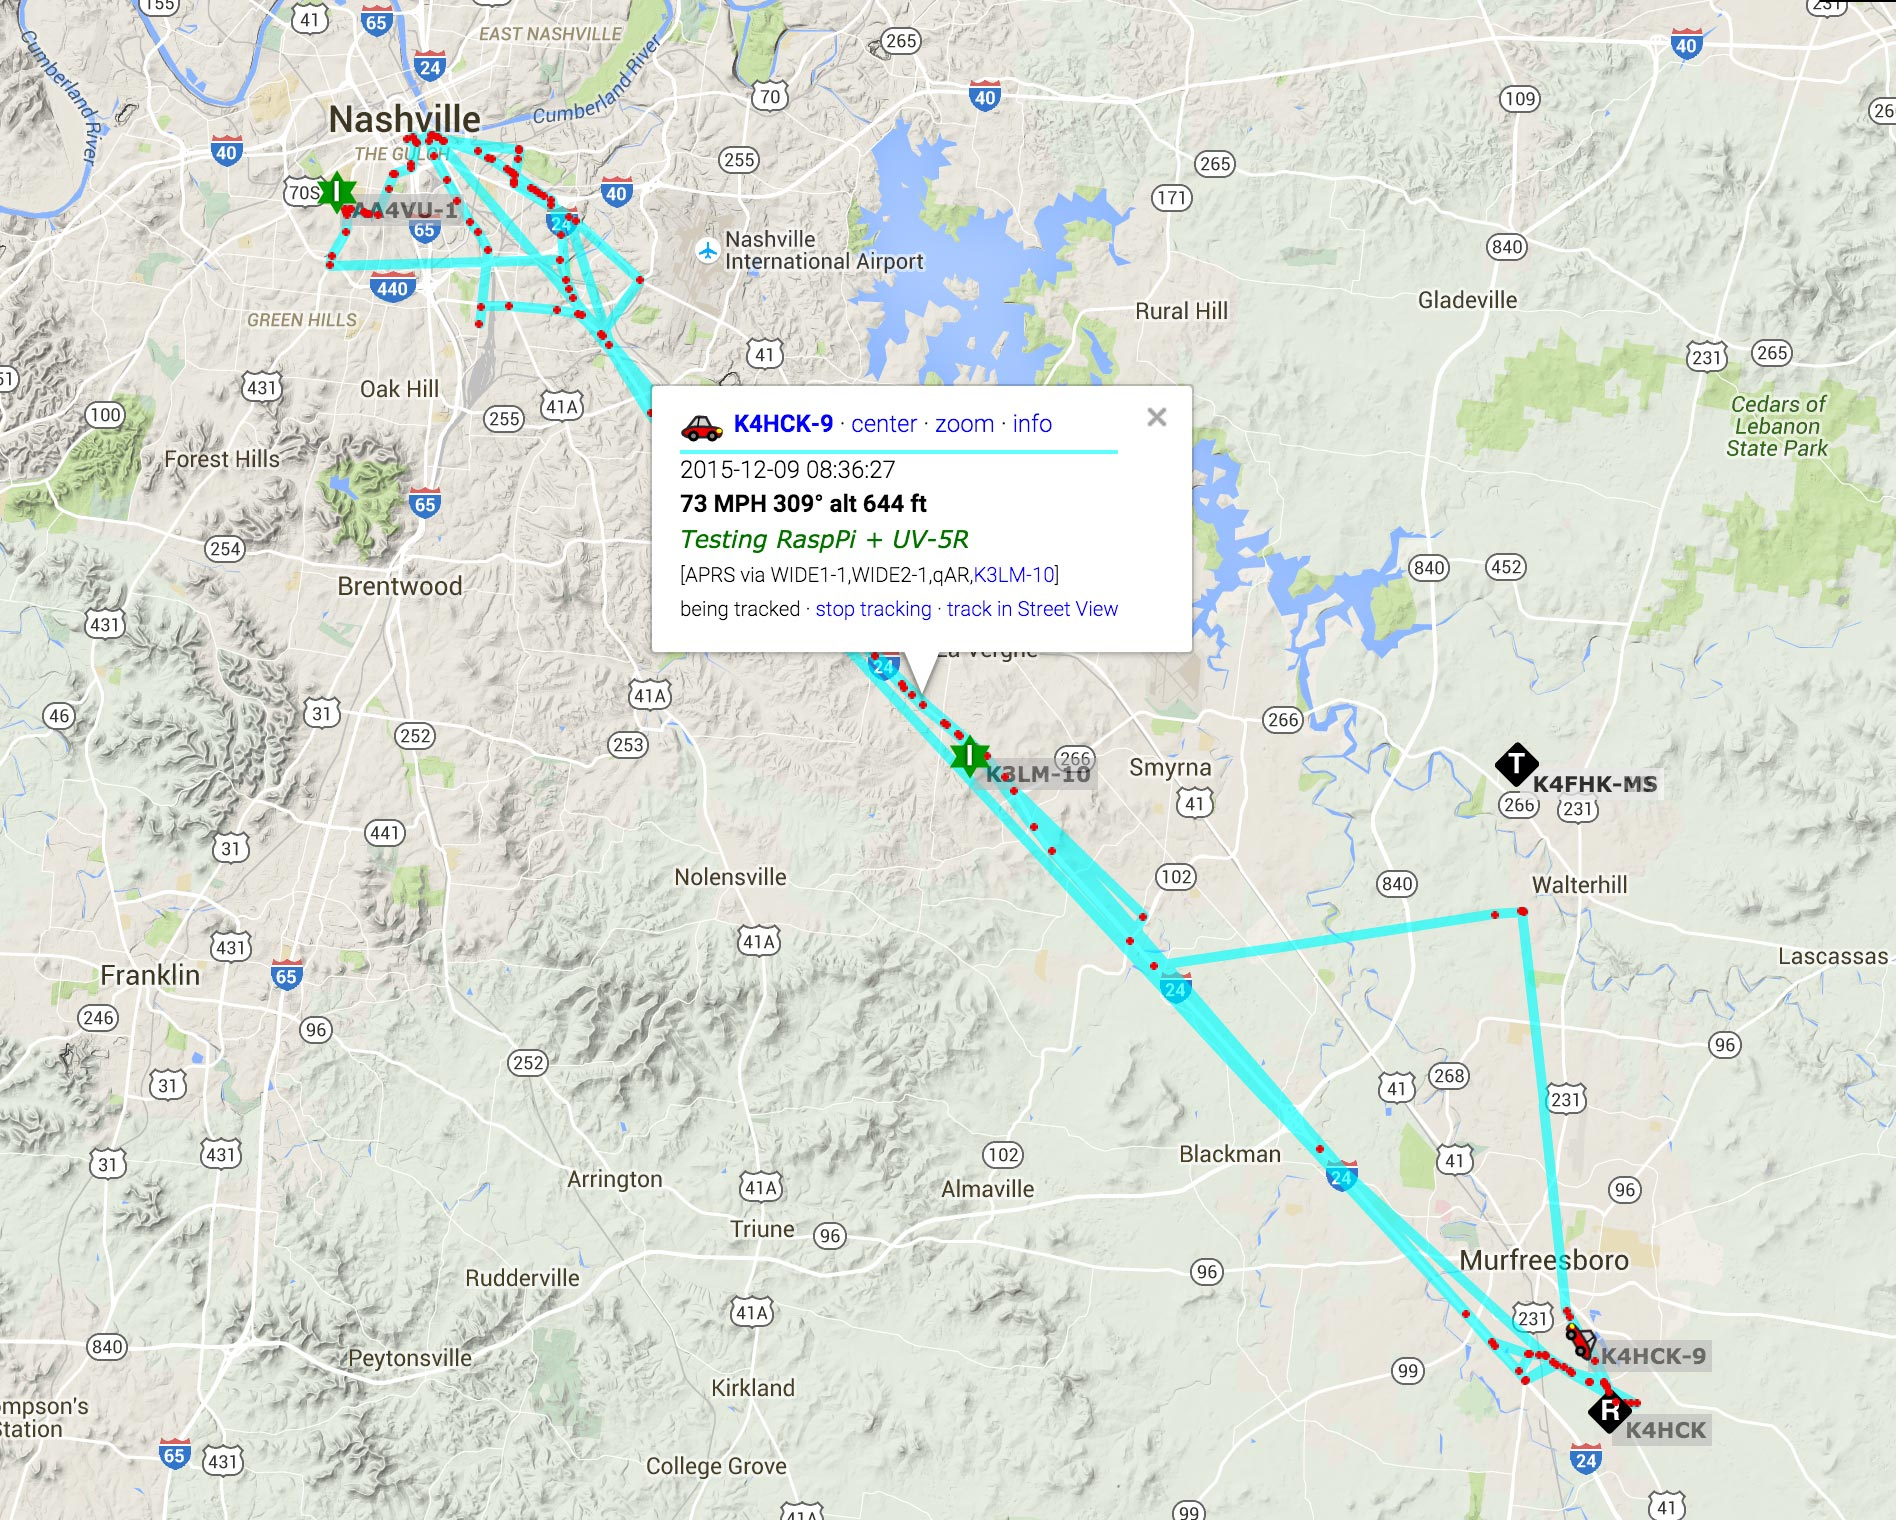 APRS position track